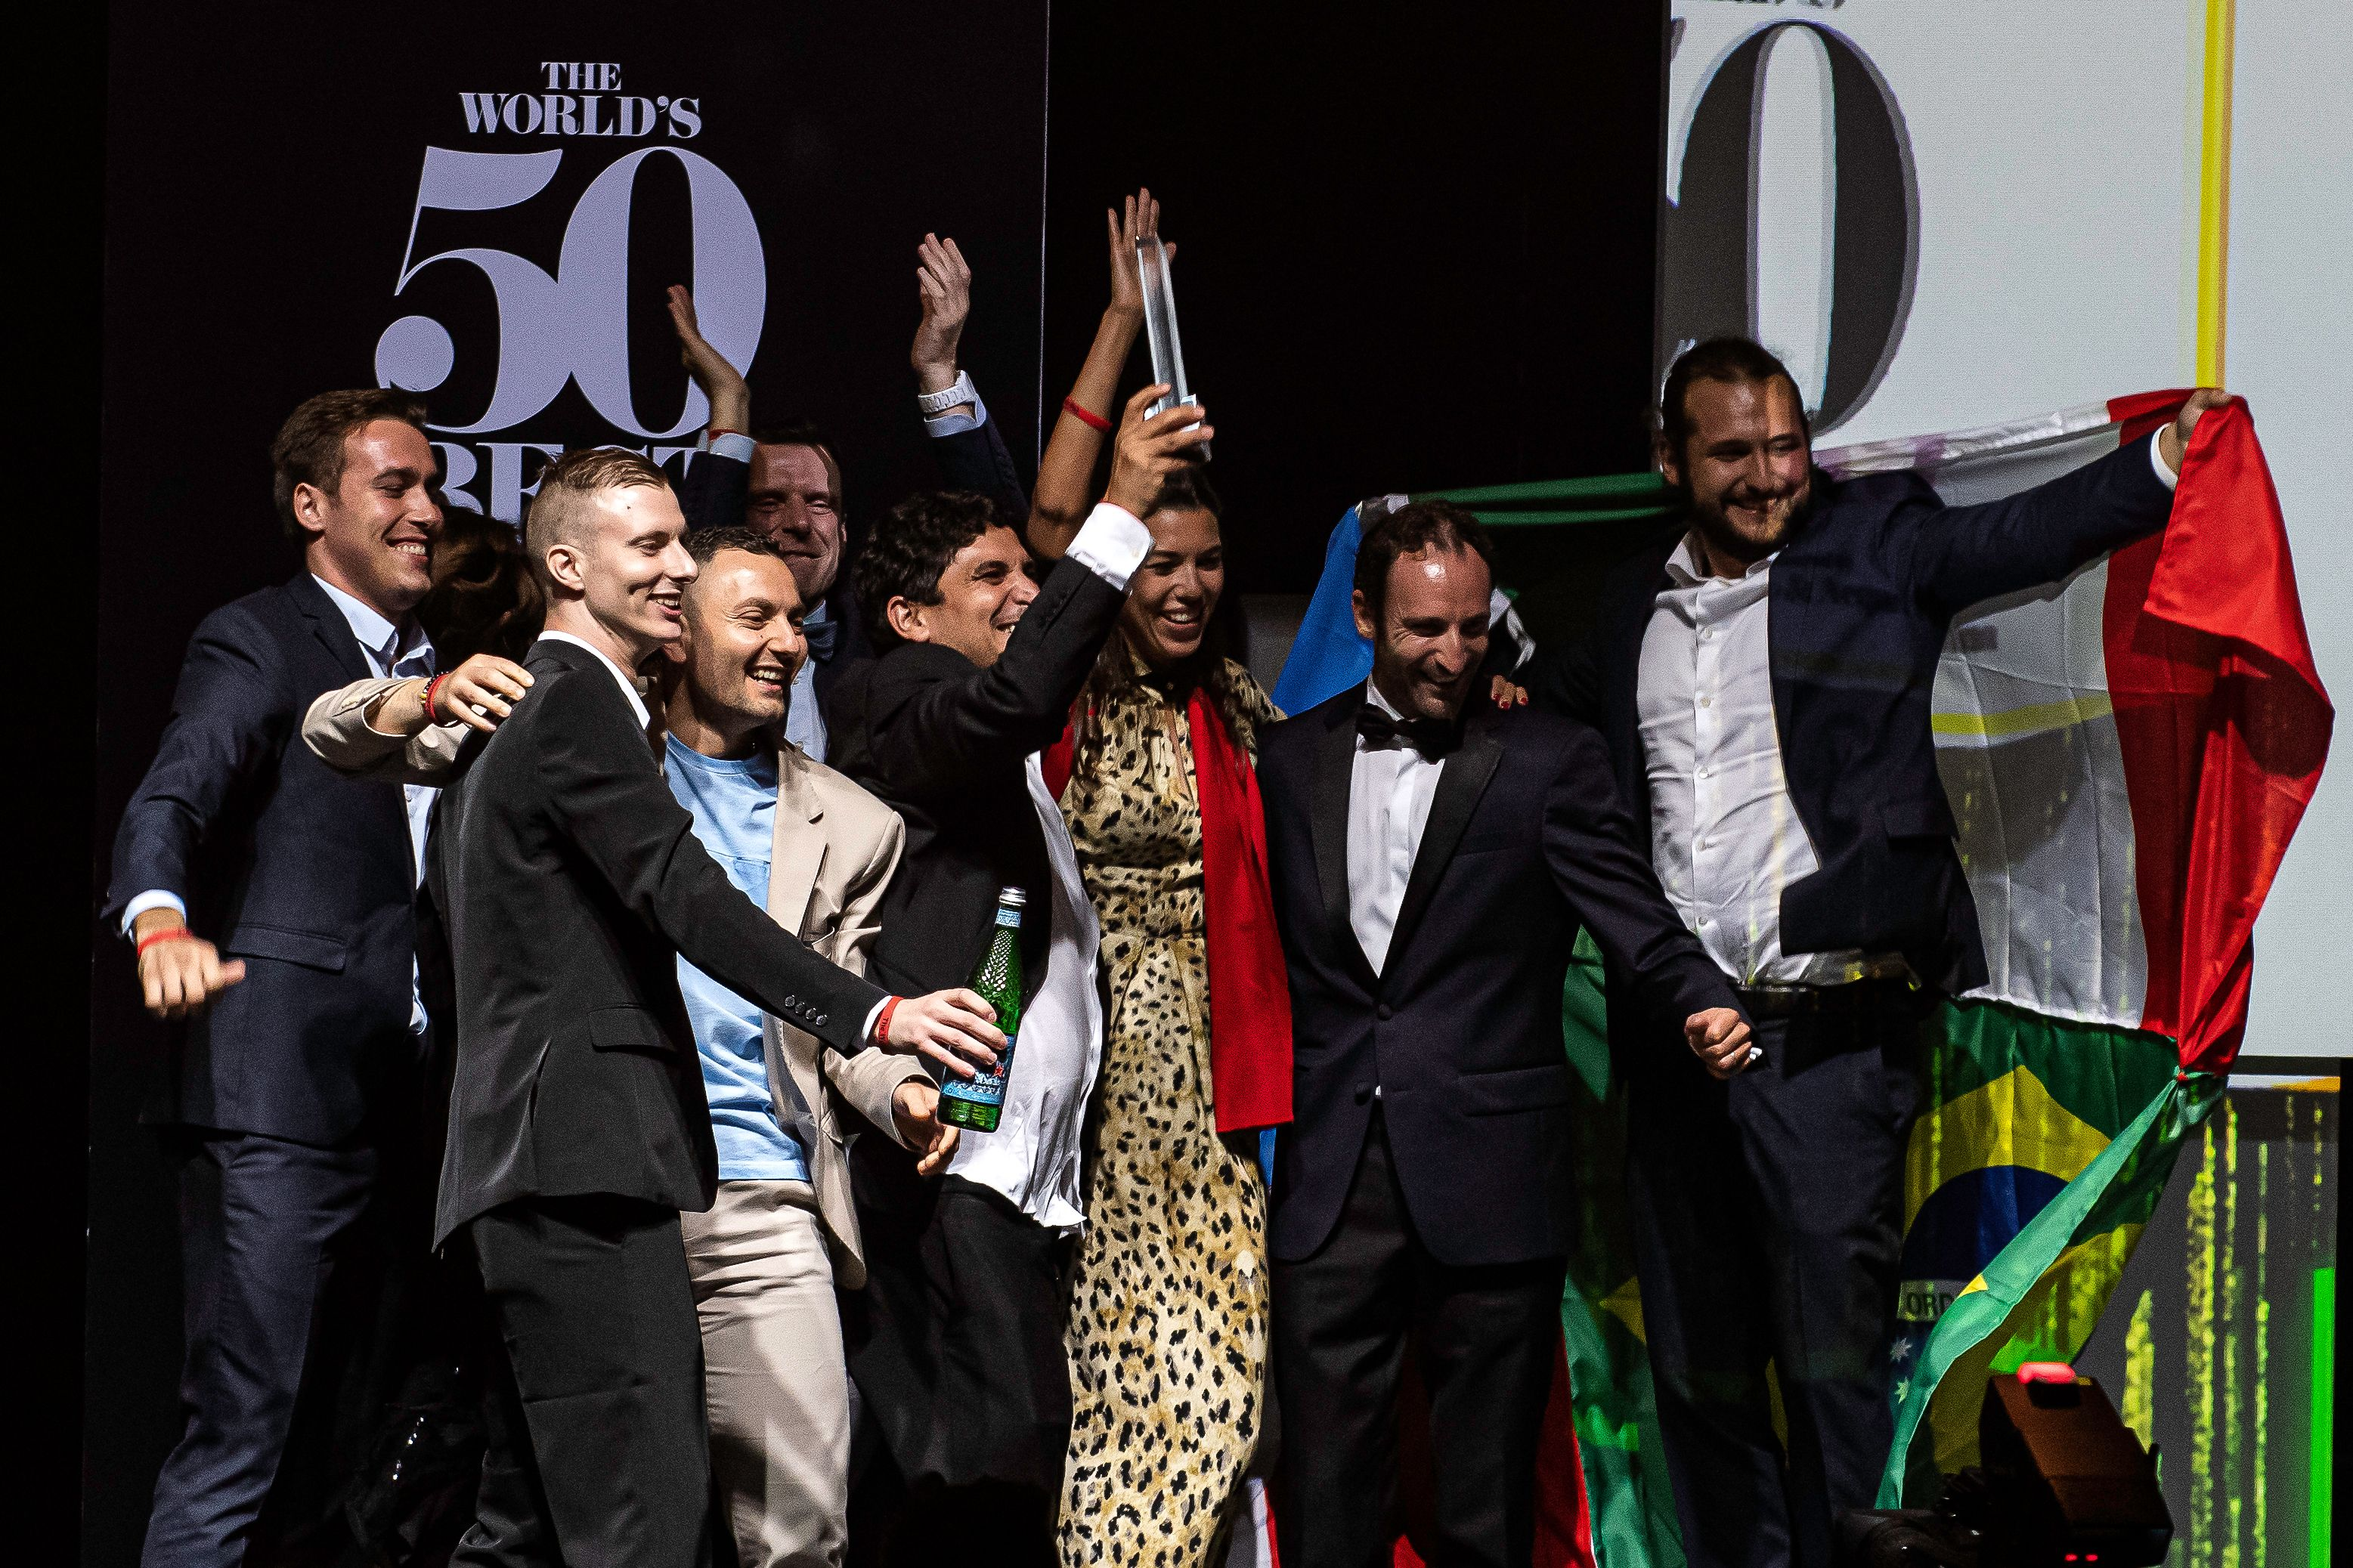 A group of people celebrate on stage after winning an award